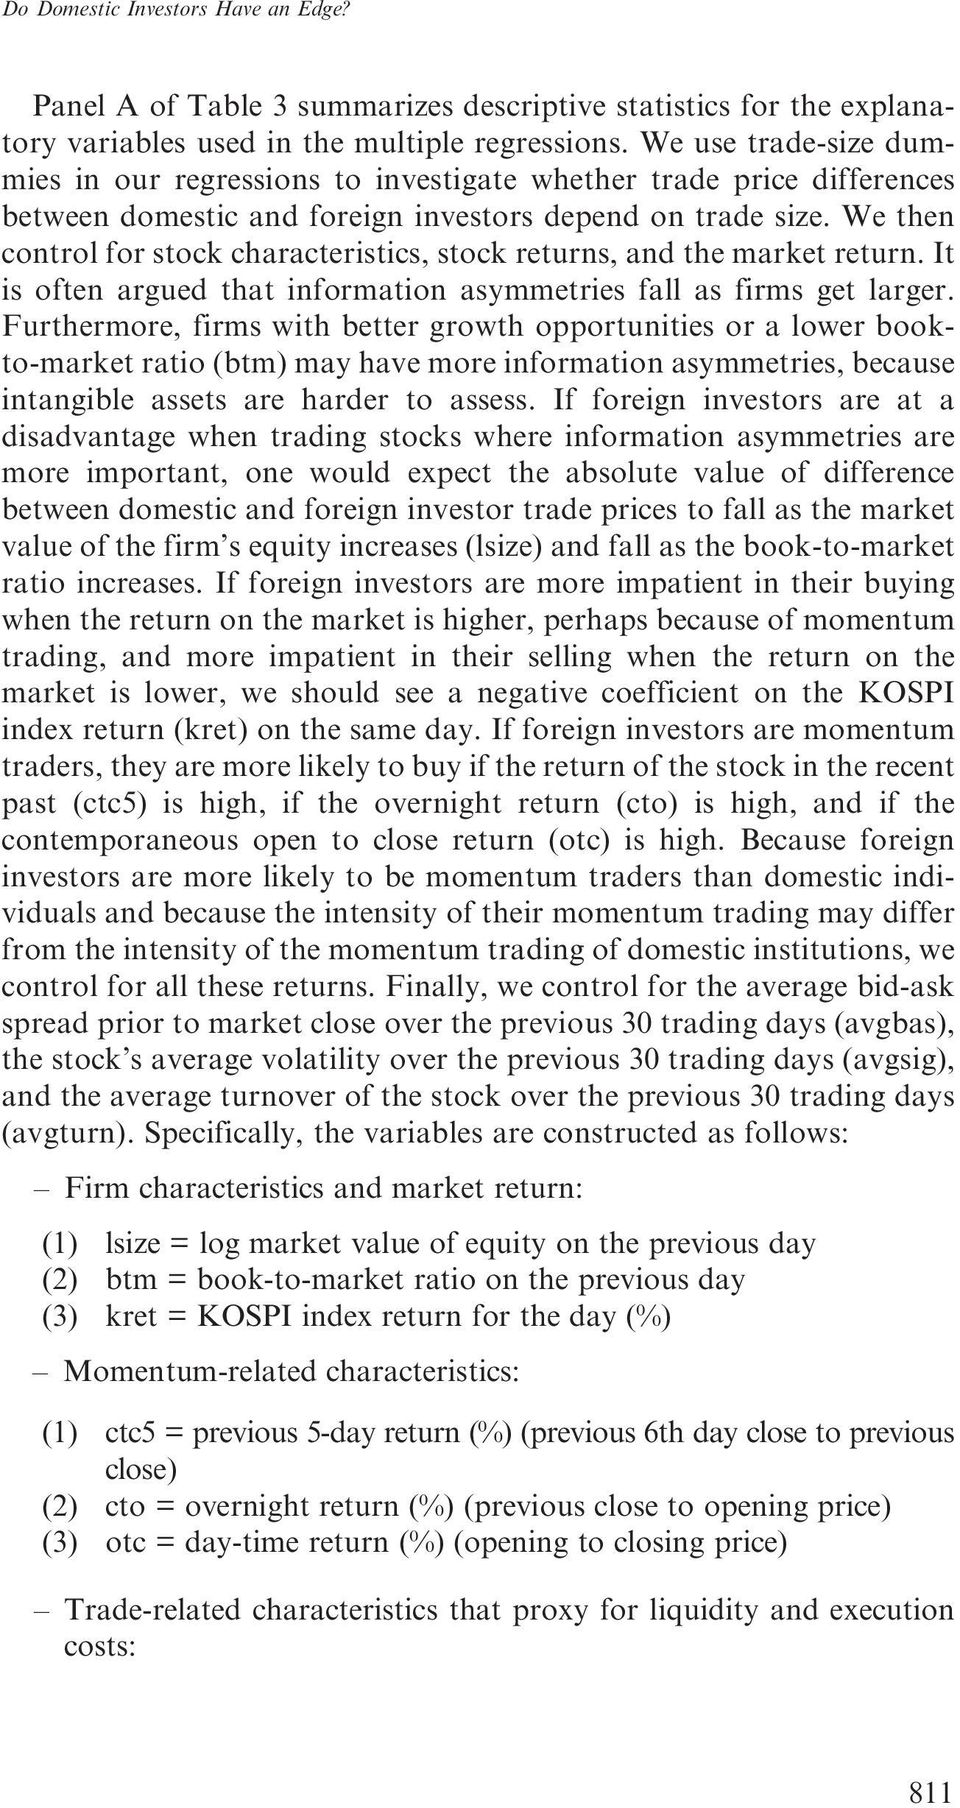 We then control for stock characteristics, stock returns, and the market return. It is often argued that information asymmetries fall as firms get larger.